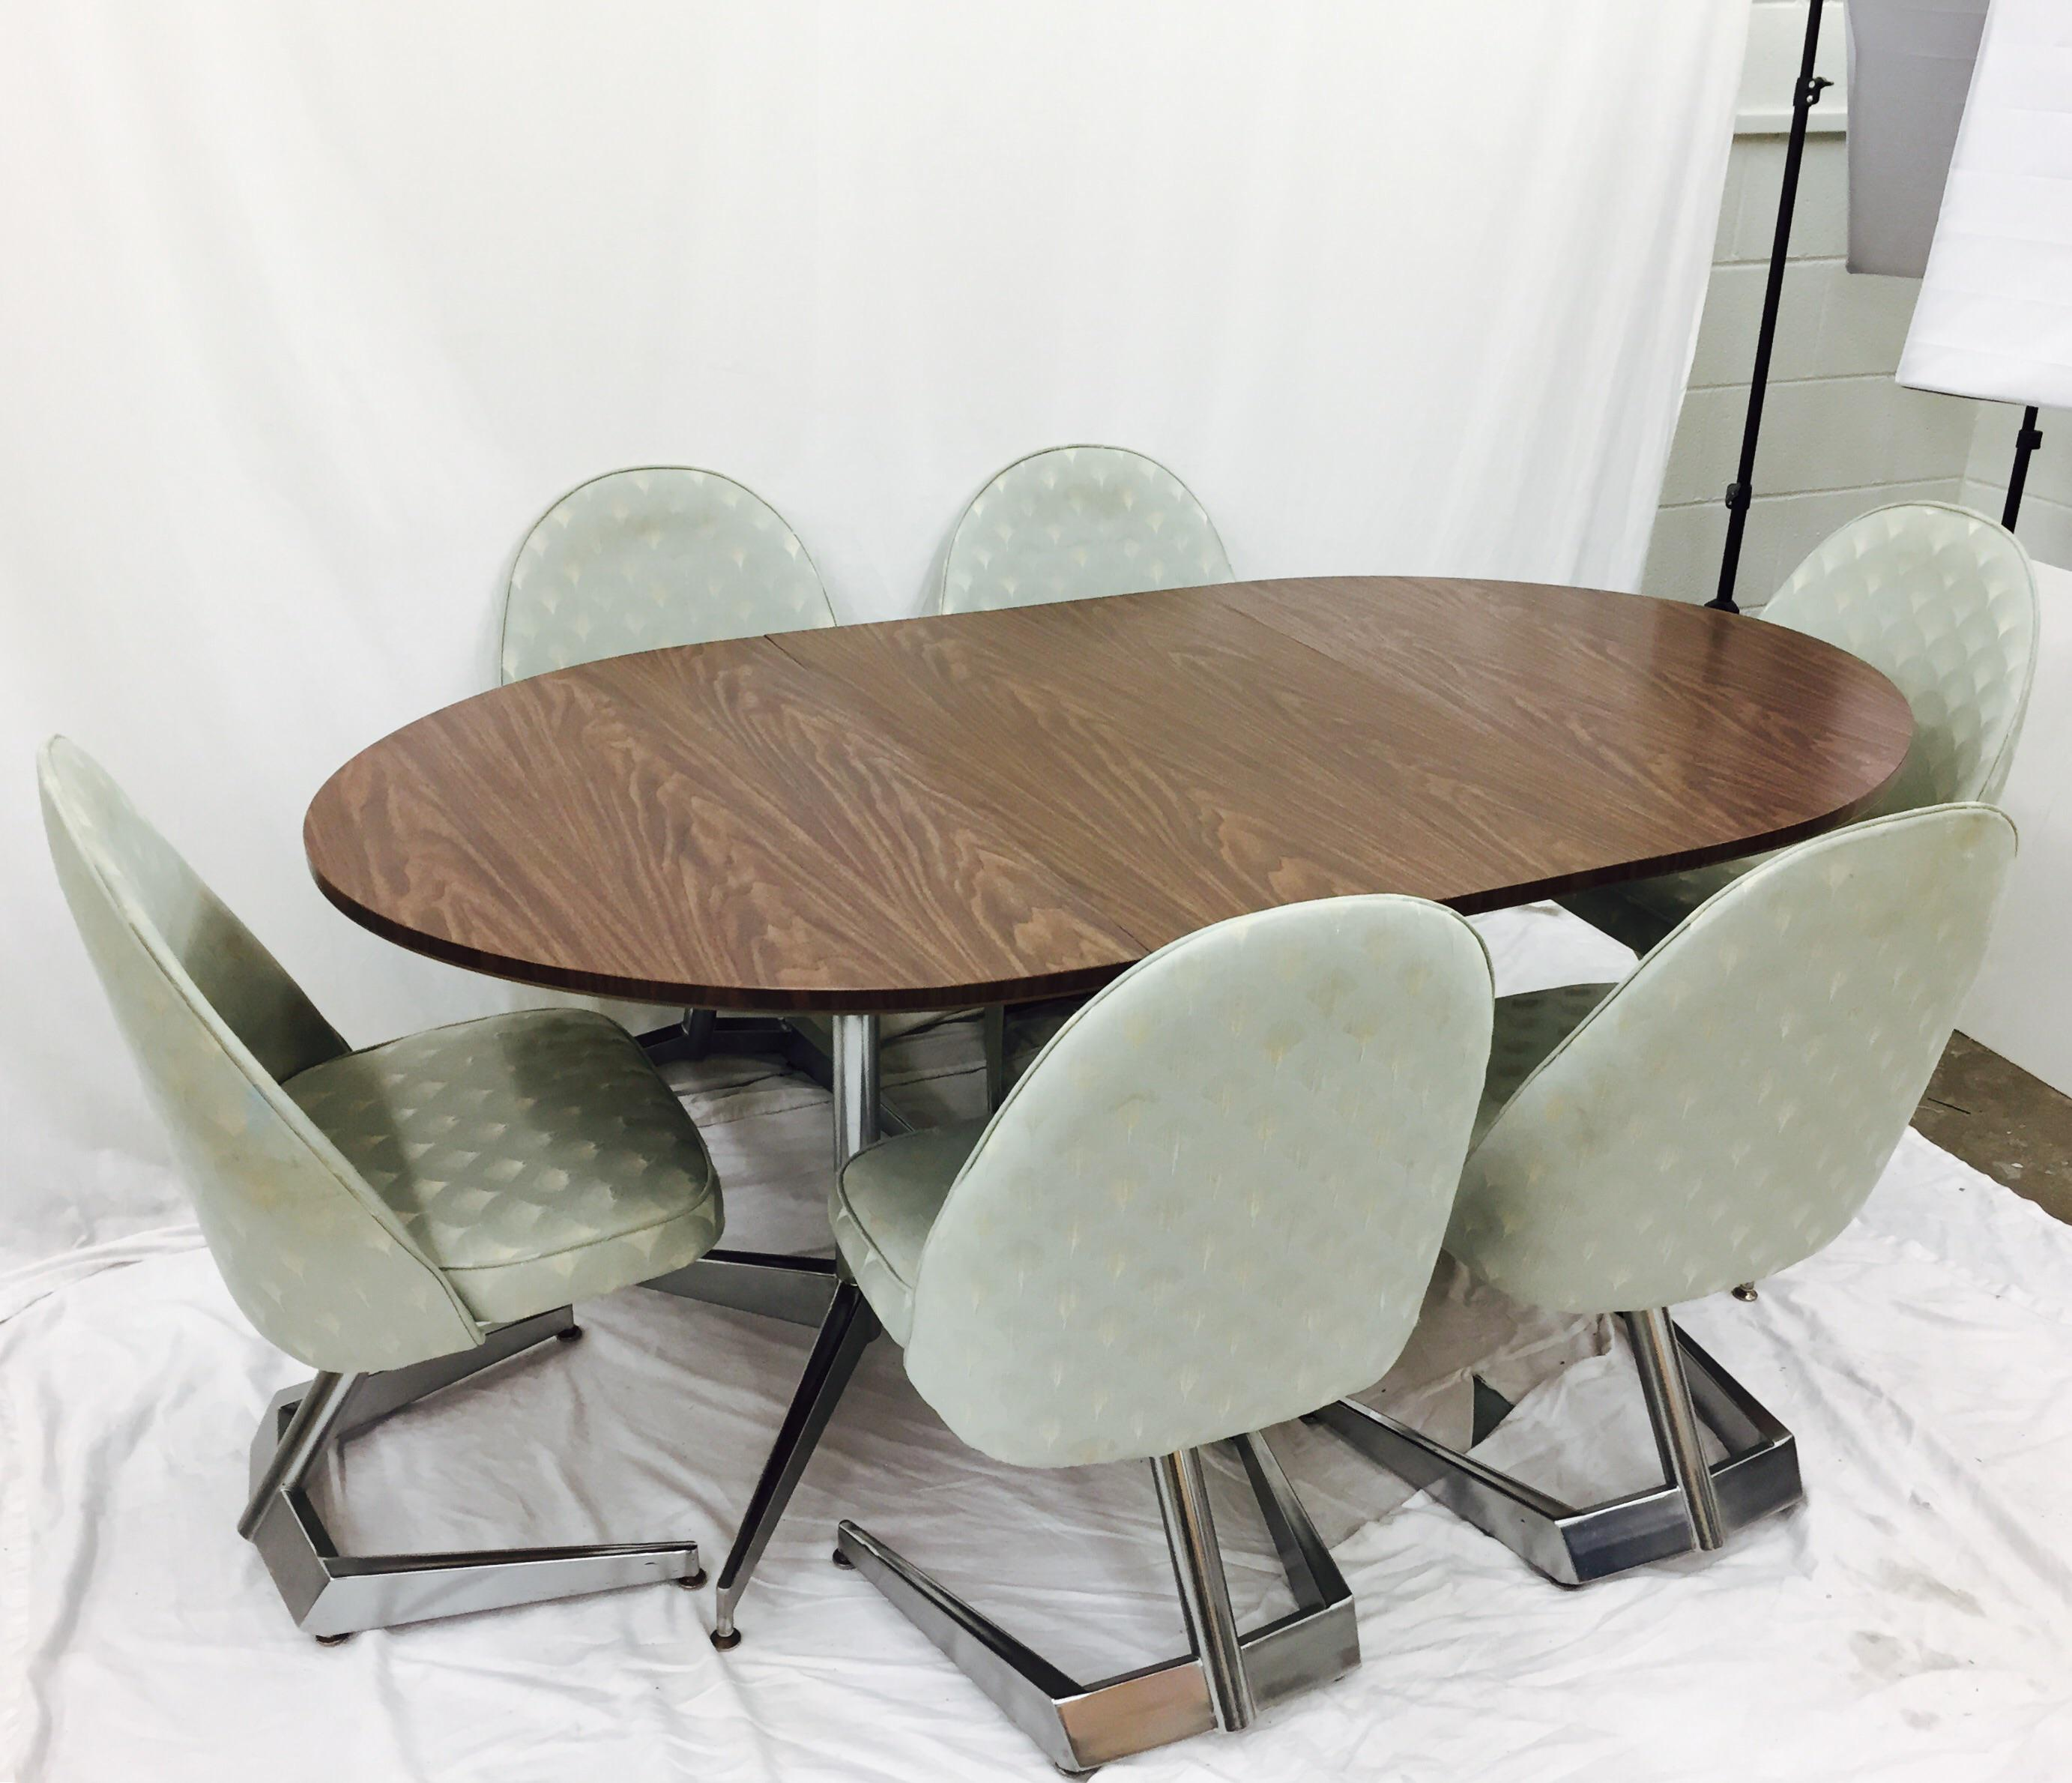 Stunning Vintage Mid Century Modern Eames Era Chrome Dining Set. Complete  With 6 Chrome Swivel